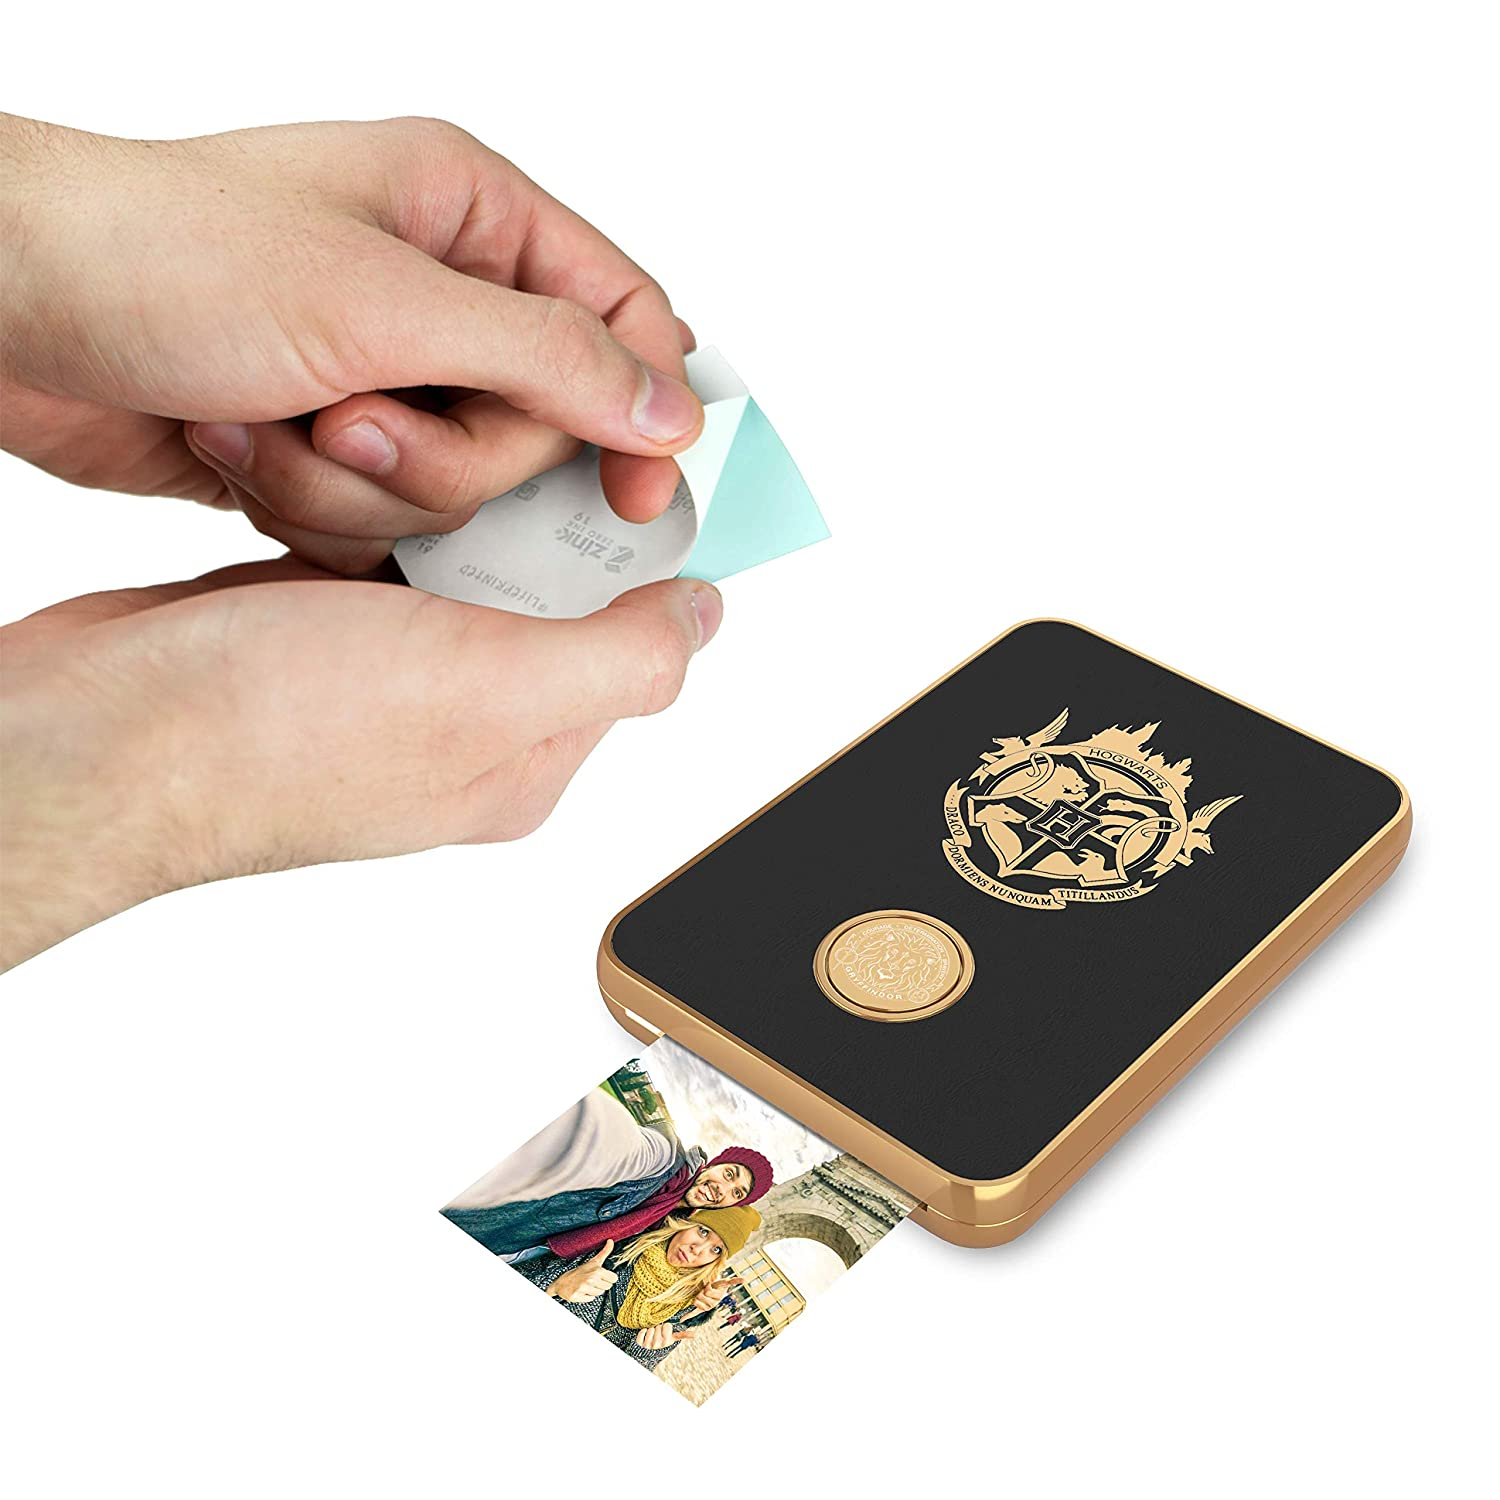 Harry Potter Magic Photo and Video Printer for iPhone and Android  Your  Photos Come to Life Like Magic! - Black